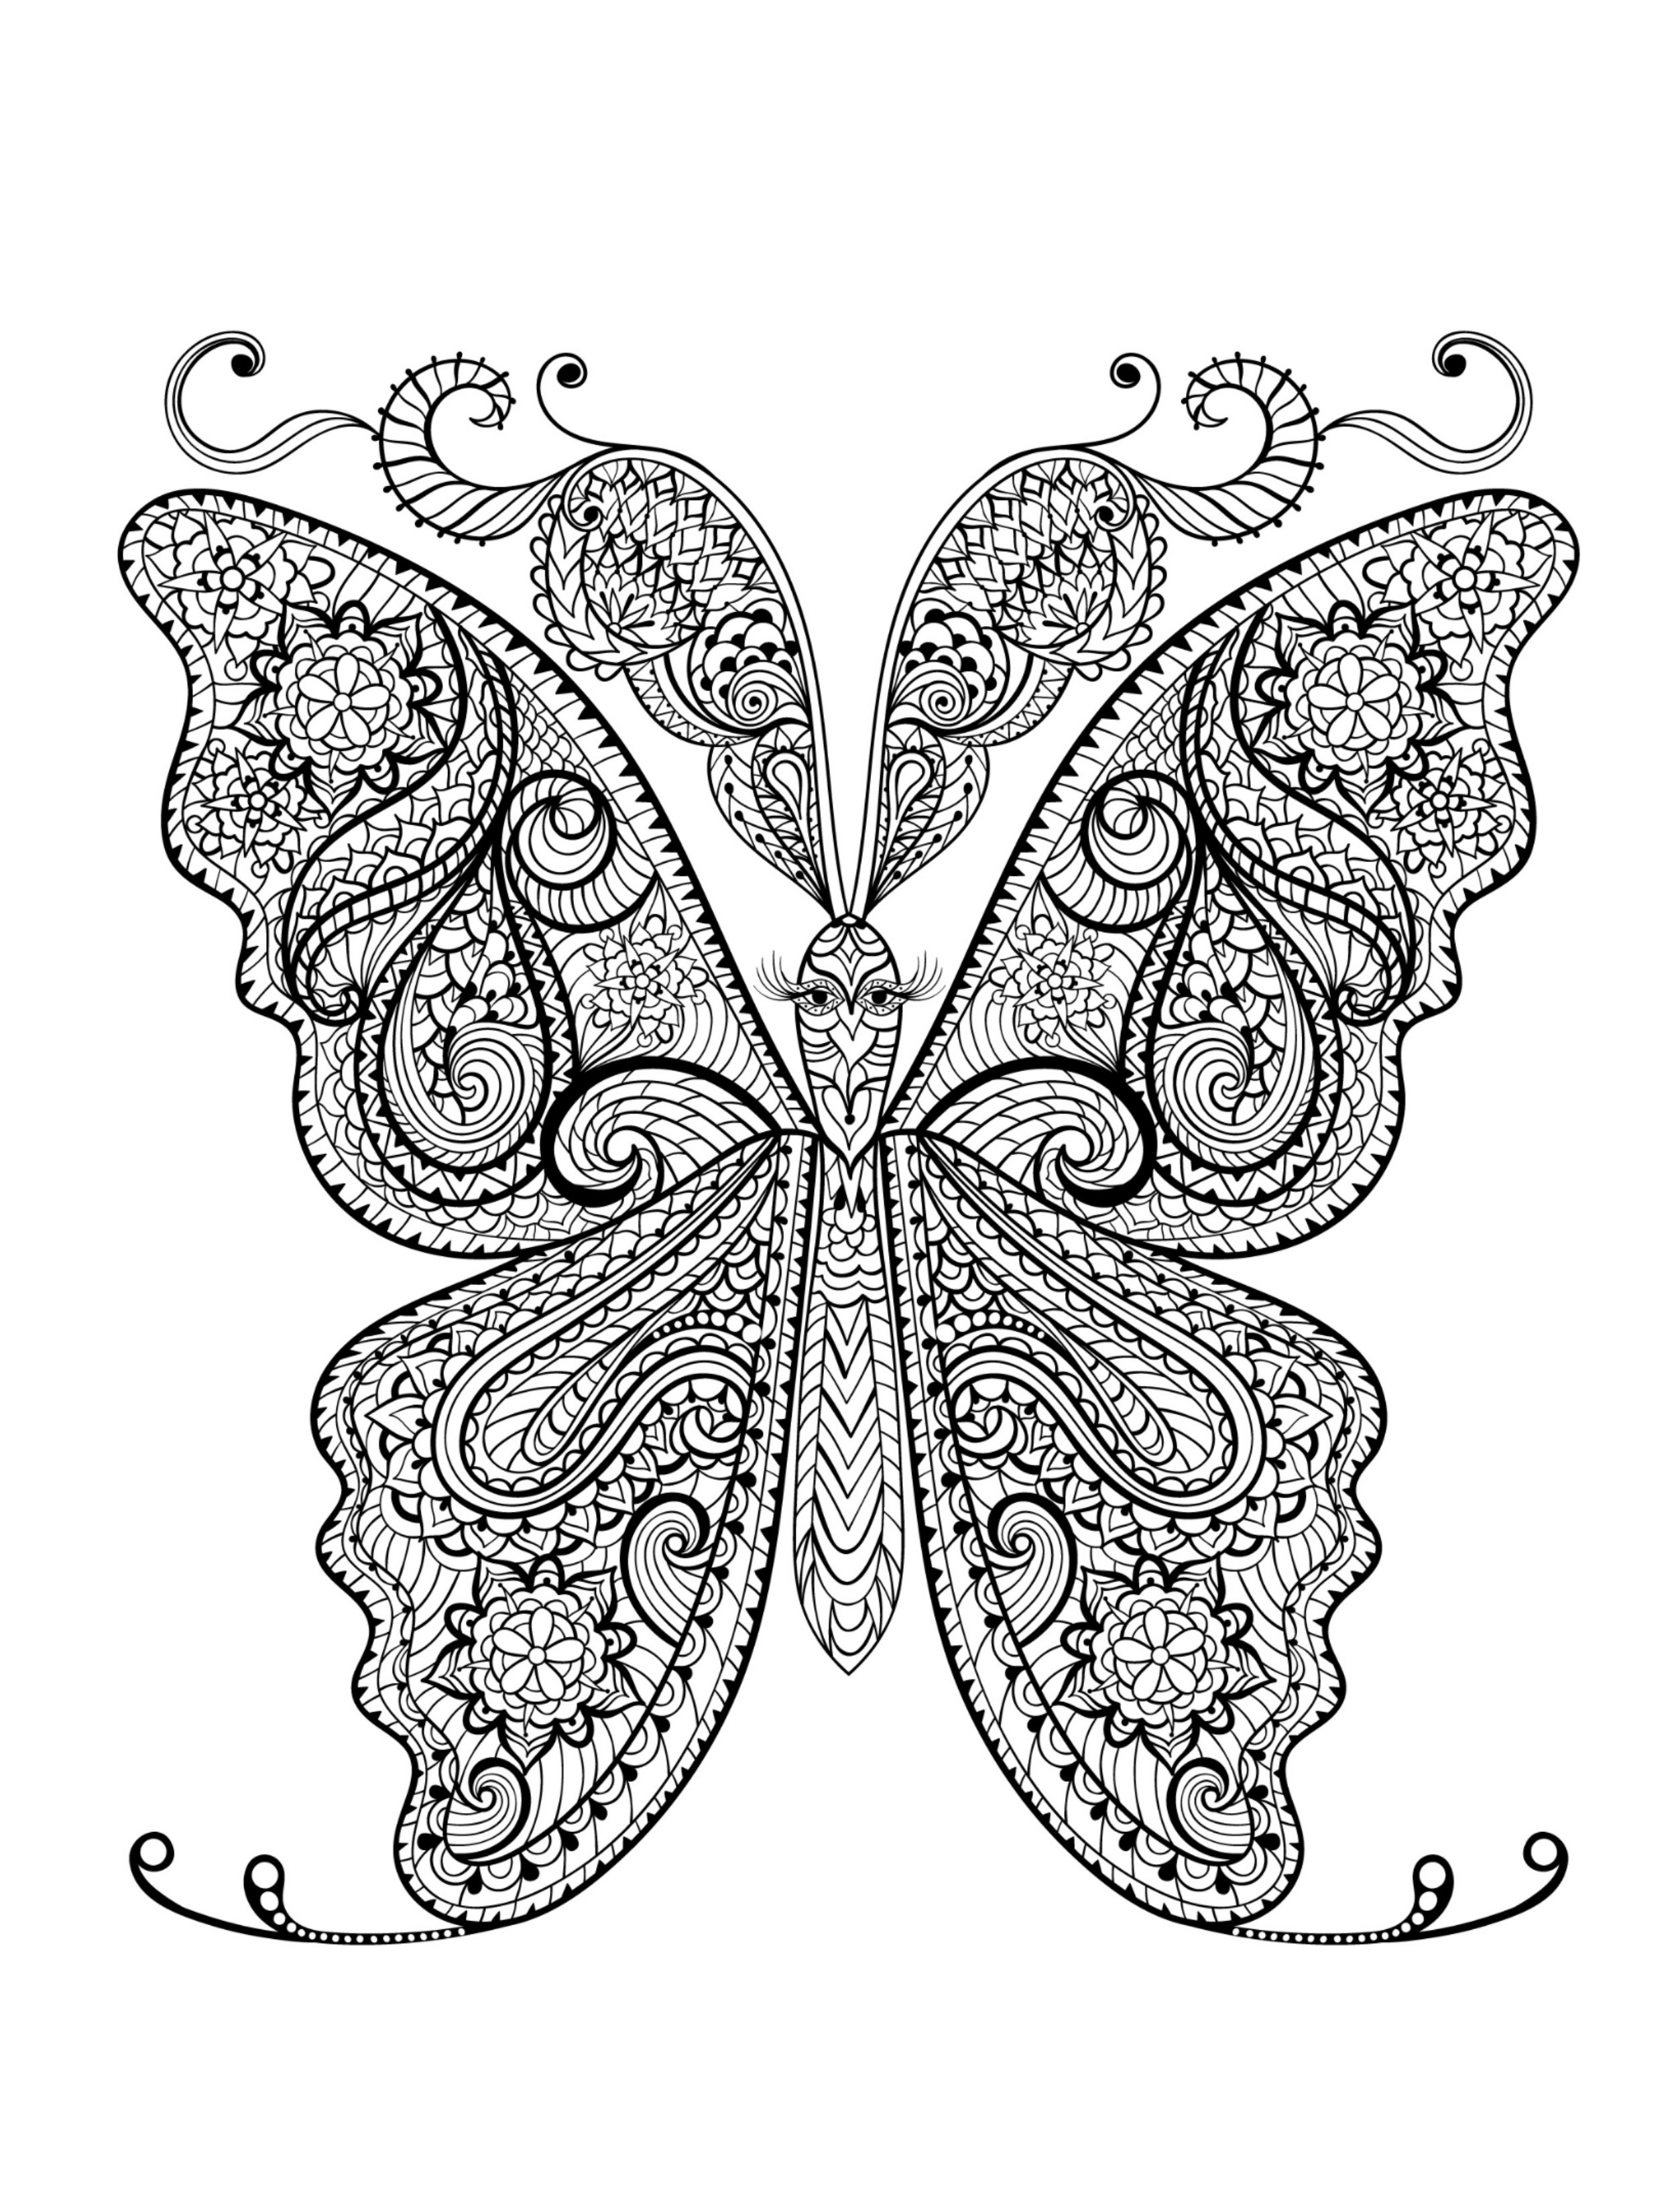 Best ideas about Coloring Pages For Adults Only . Save or Pin Adult Coloring Pages Animals Best Coloring Pages For Kids Now.